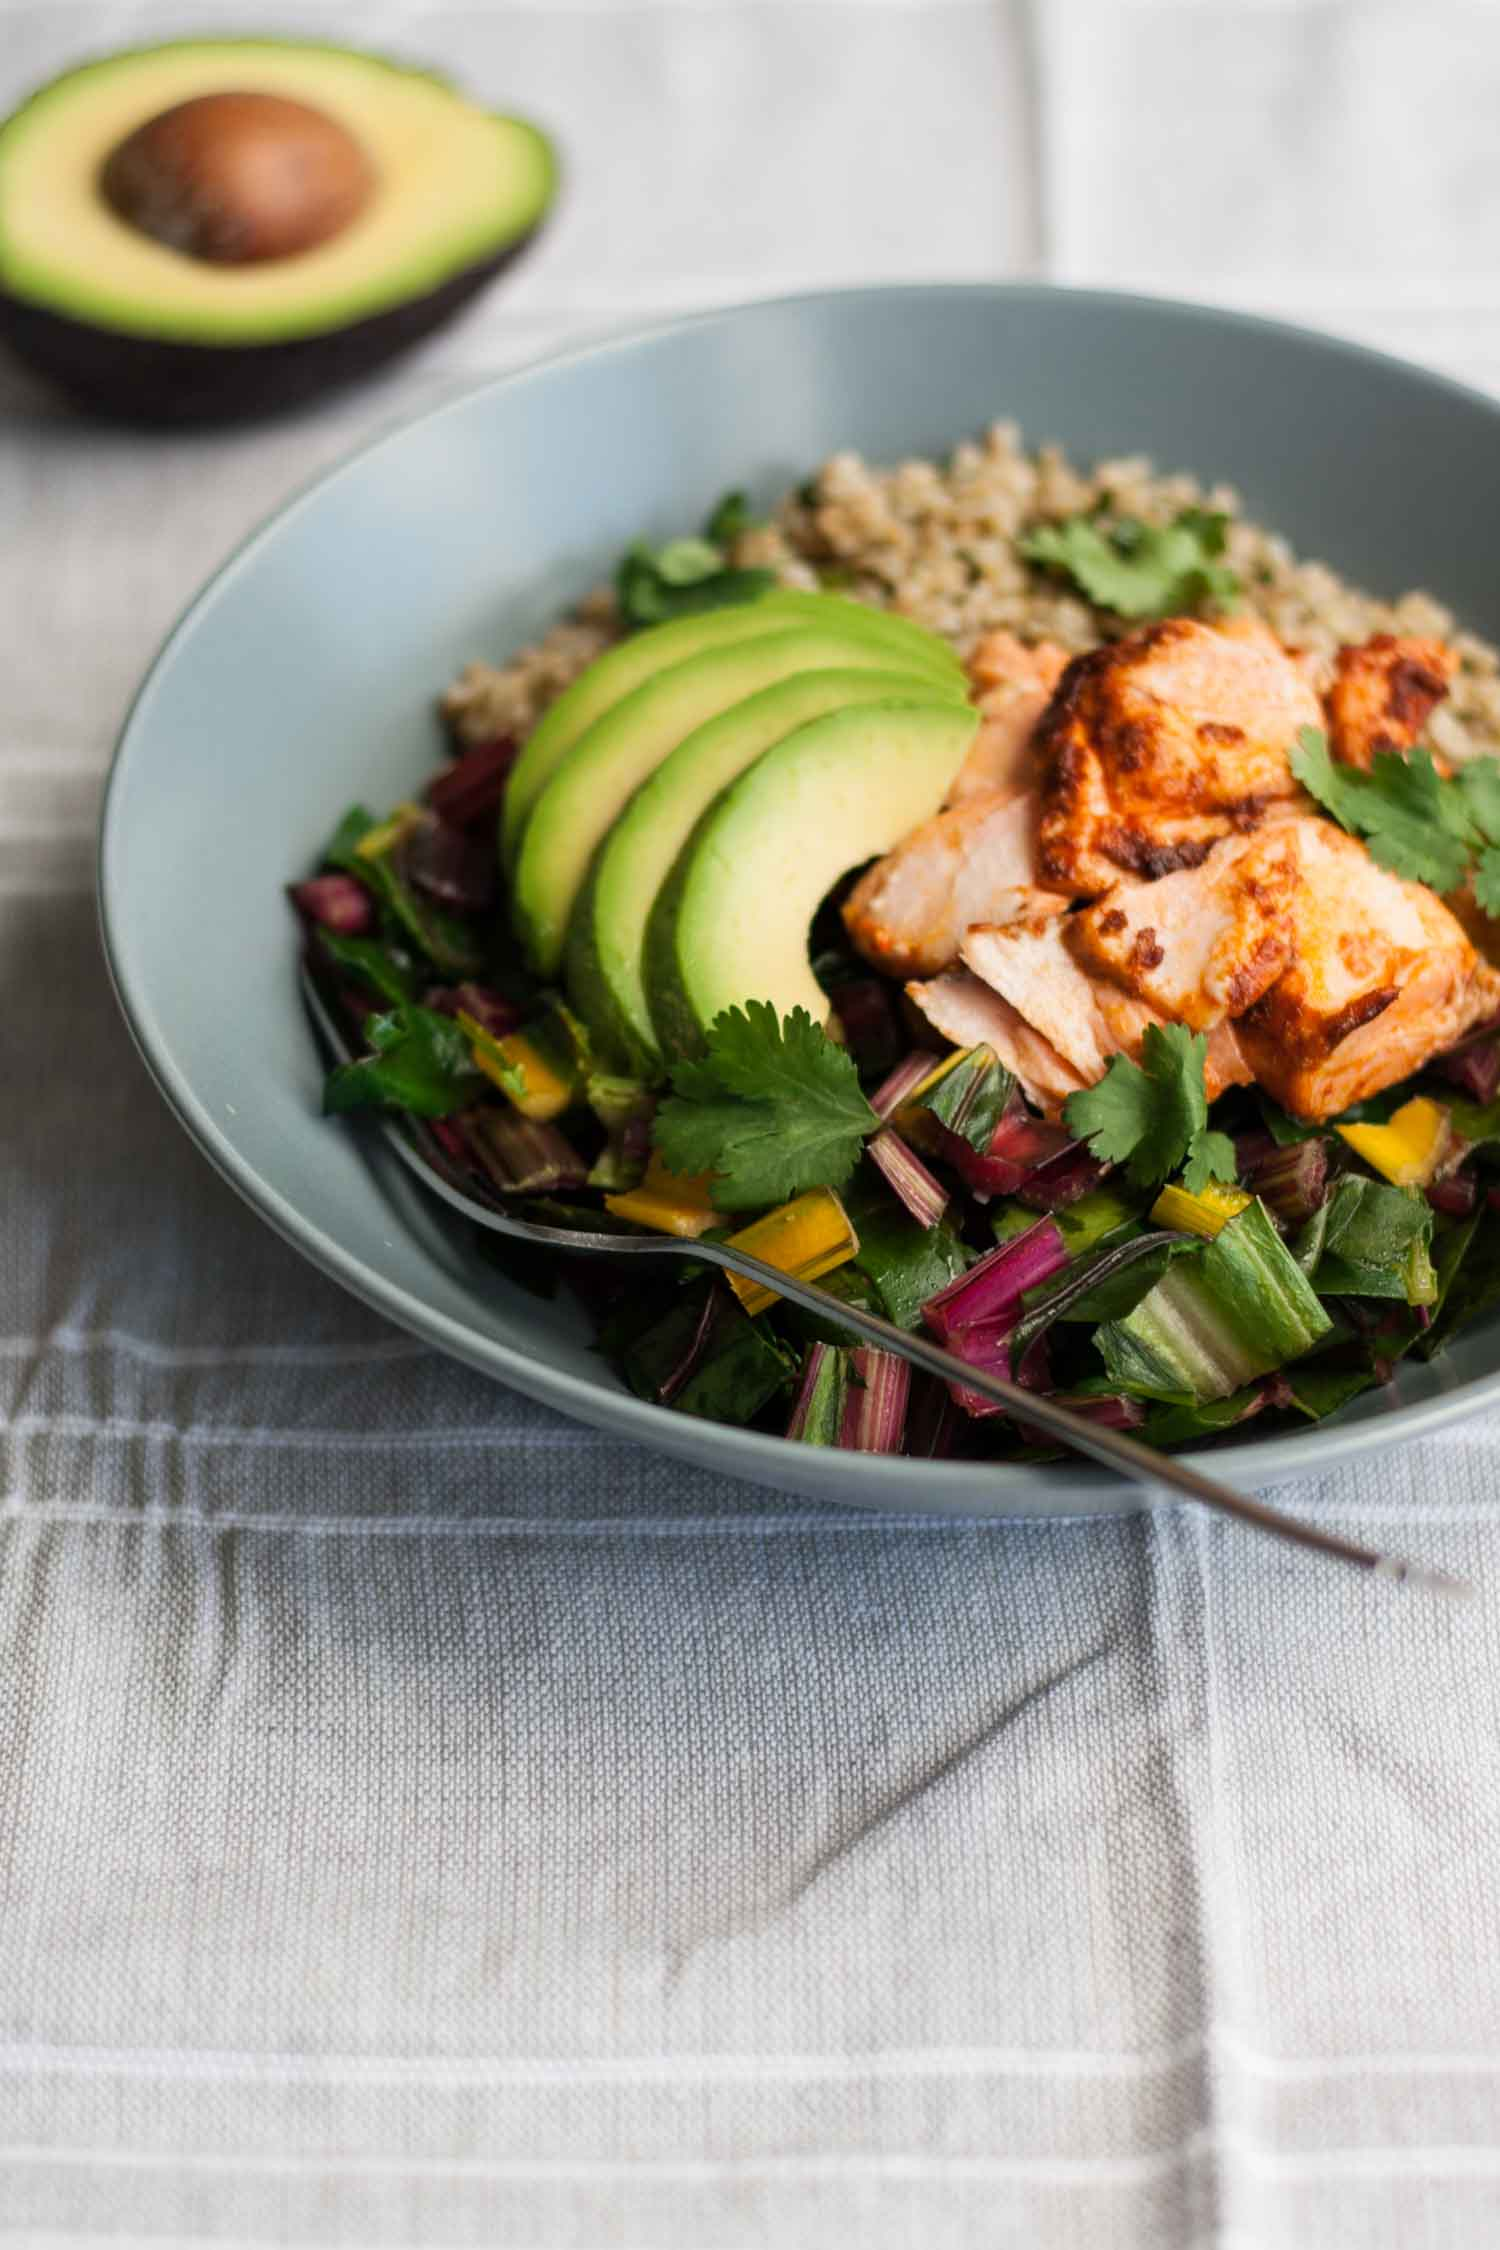 Baked Chipotle Salmon Freekeh Bowls - delicious bowls of hearty freekeh and garlicky greens topped with moist, smoky salmon - a quick, easy and nutritious lunch or dinner recipe!   eatloveeats.com